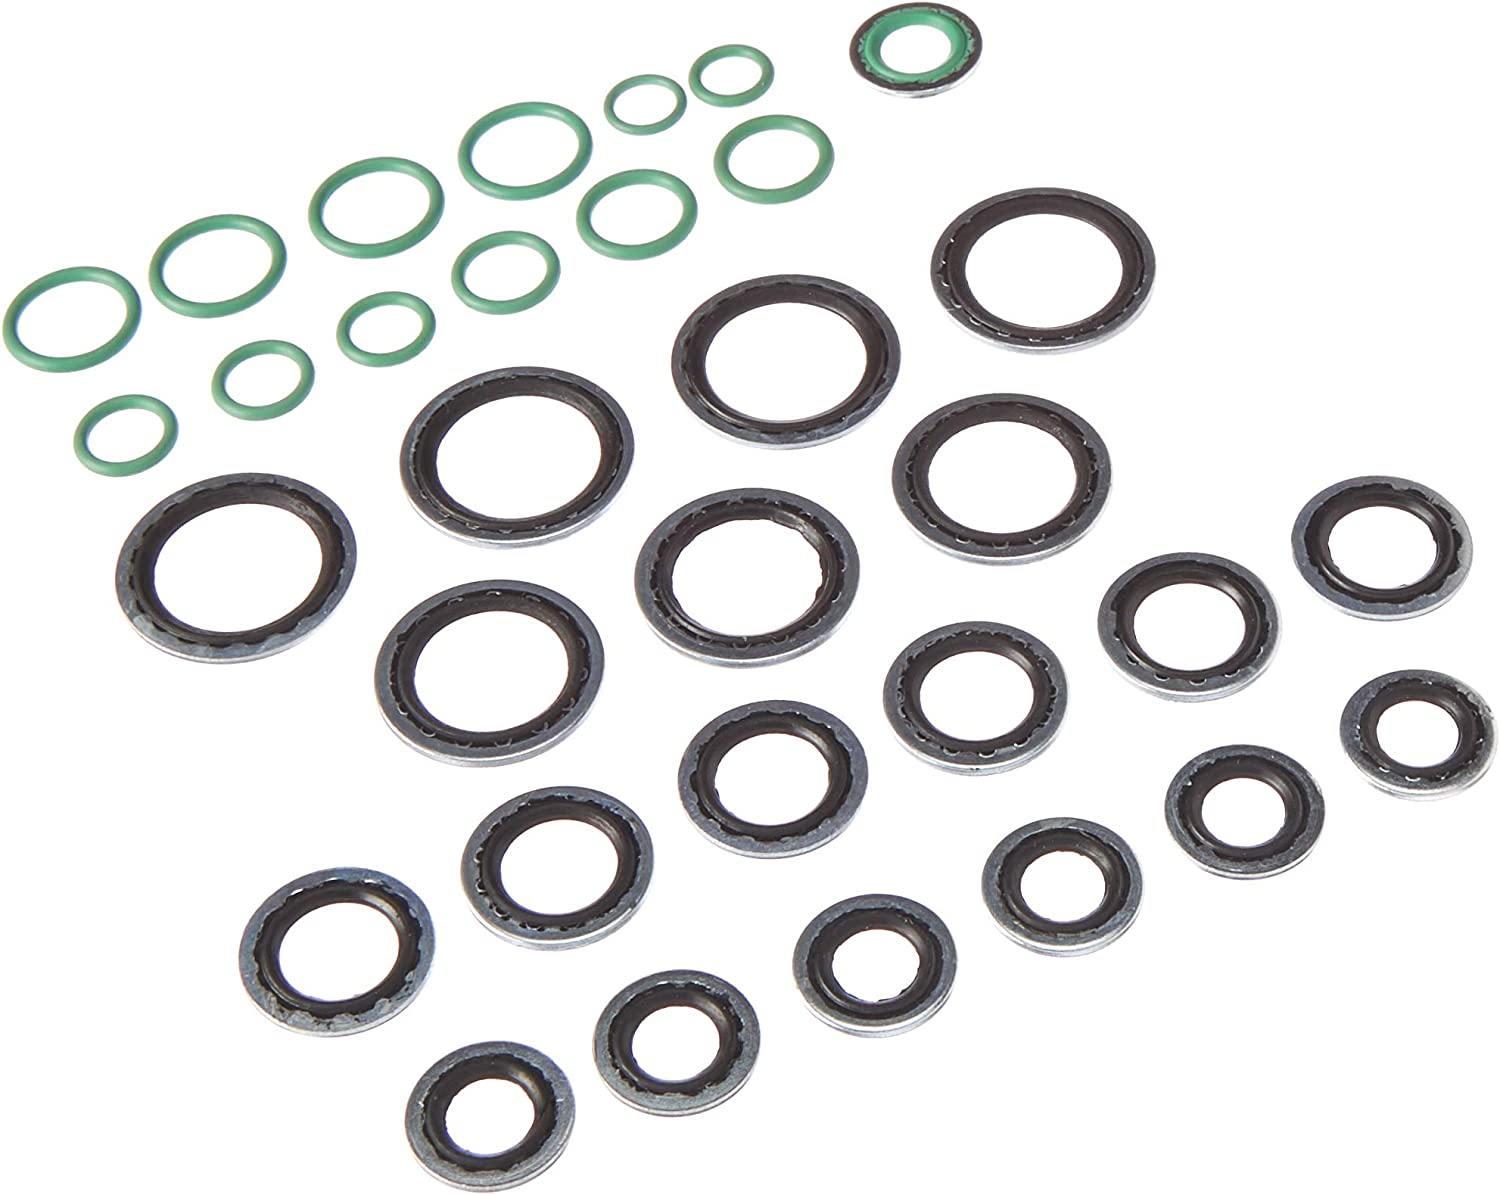 Four Seasons 26760 O-Ring /& Gasket Air Conditioning System Seal Kit